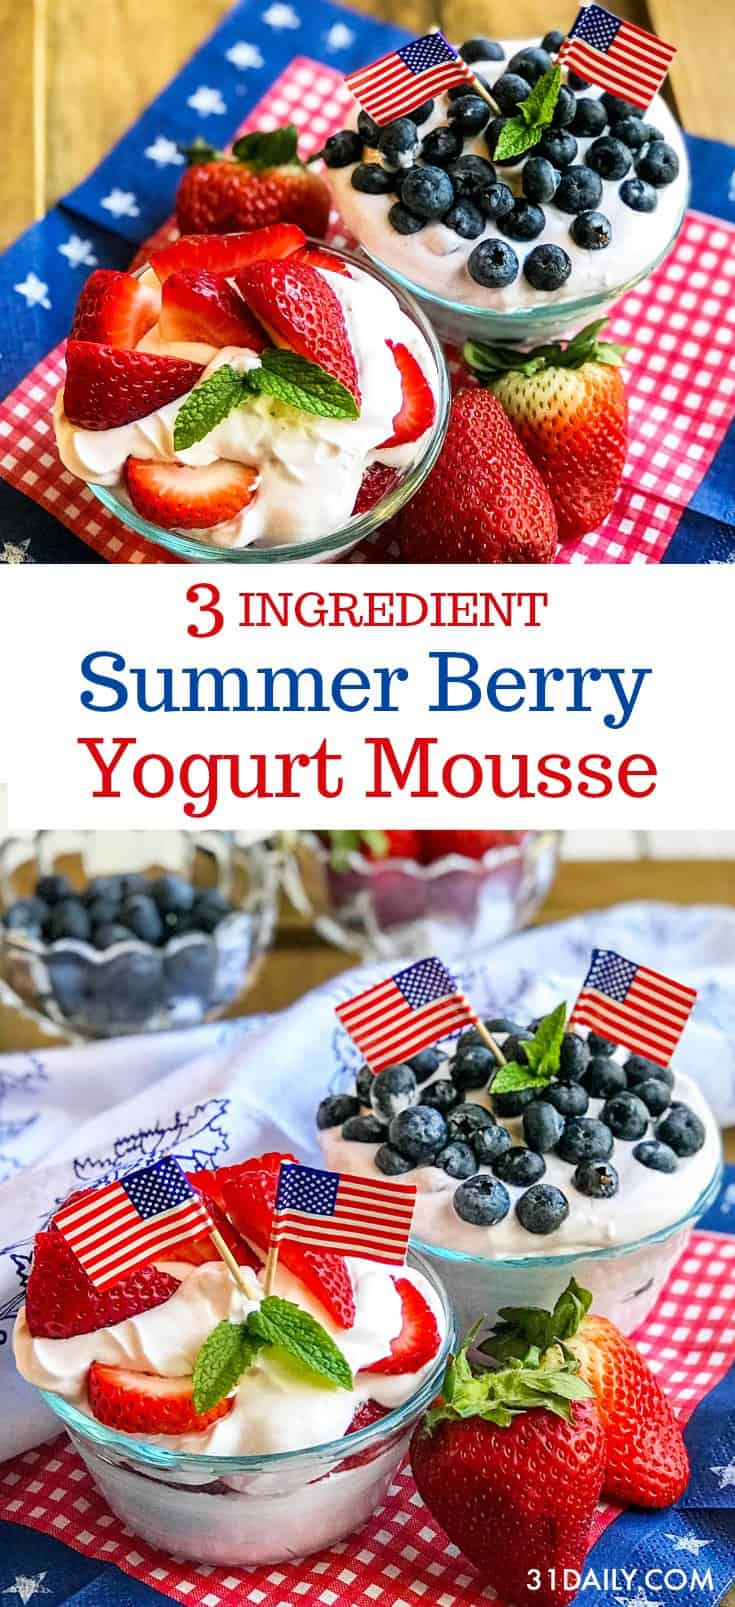 Red, White, and Blue Summer Berry Yogurt Mousse | 31Daily.com